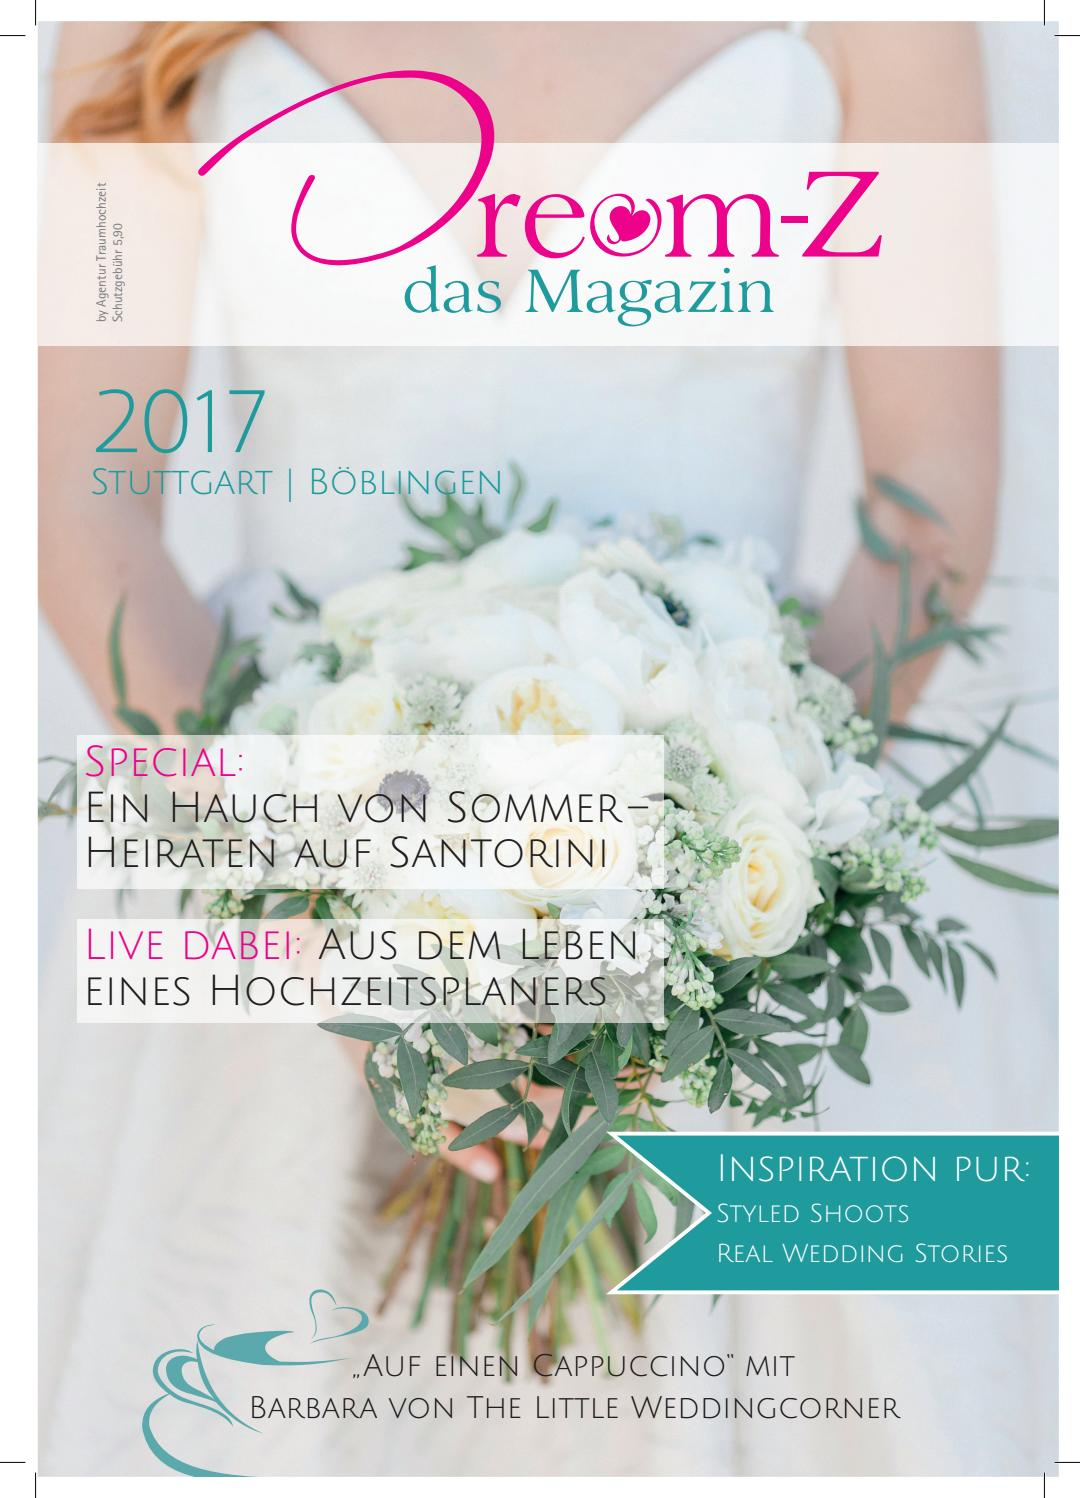 Dream-Z das Magazin - Stuttgart - Böblingen by Vanato GmbH - issuu